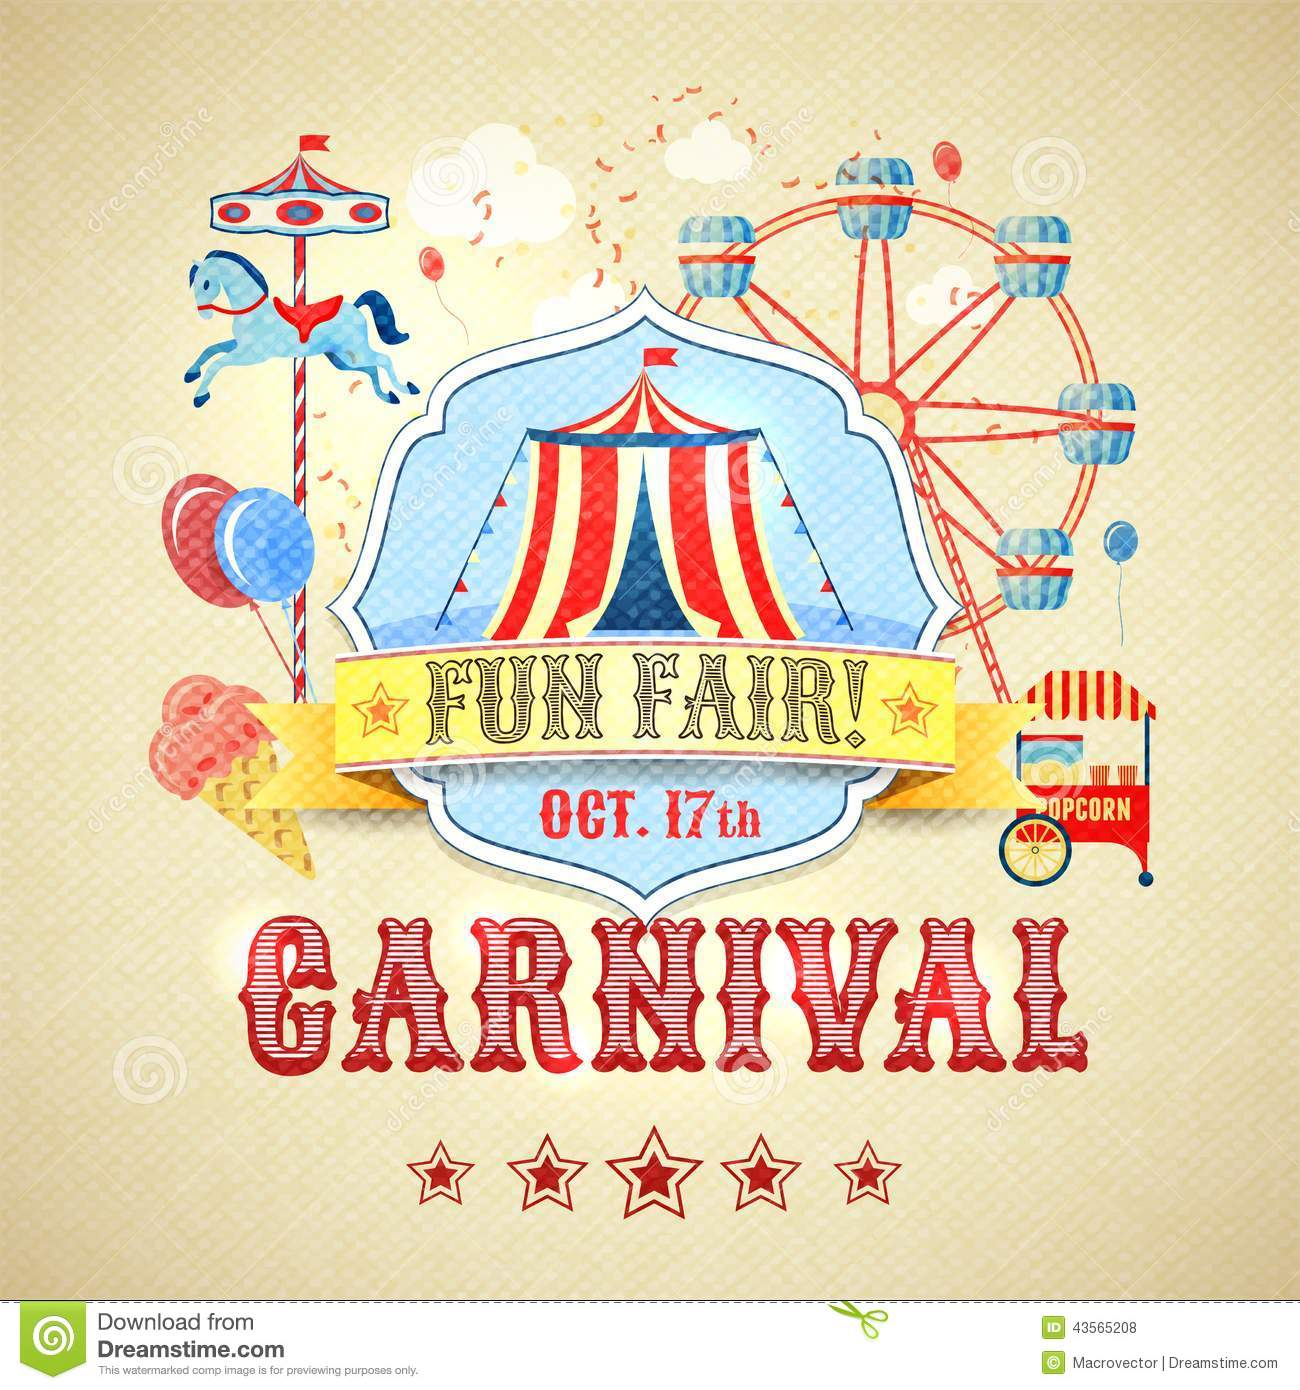 Vintage Carnival Poster Stock Vector - Image: 43565208